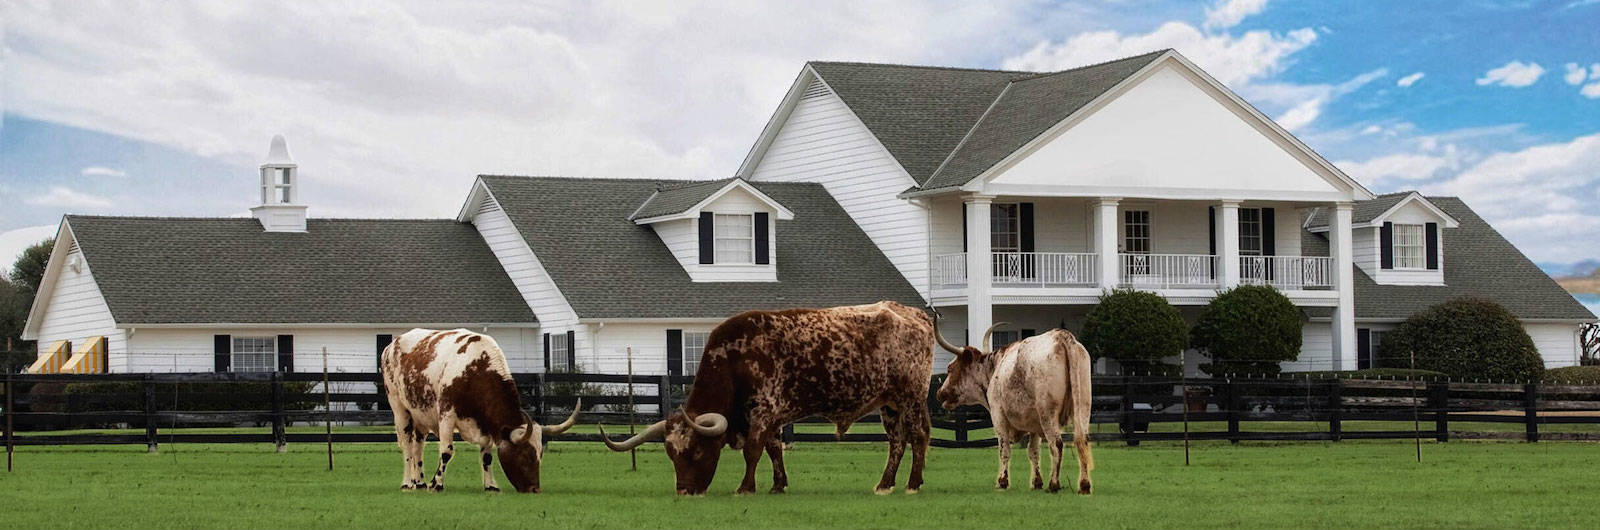 You Can Have a Sleepover at Southfork Ranch